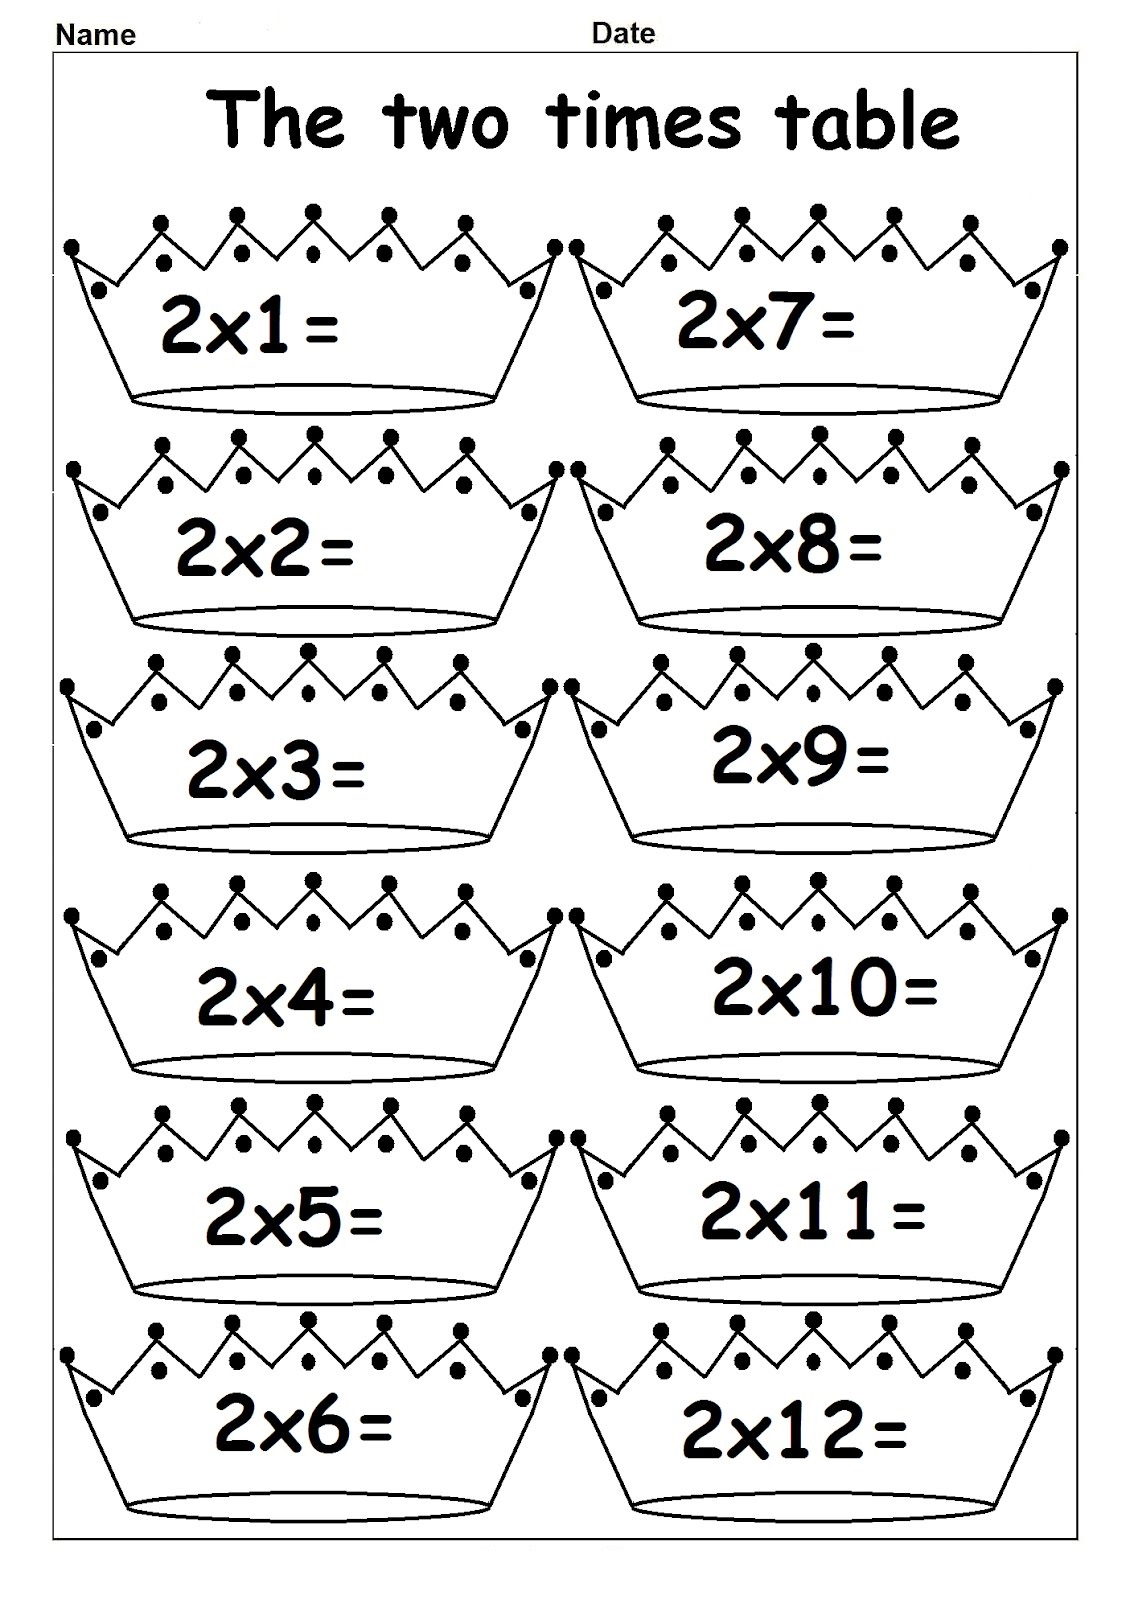 2 times table worksheets for kids